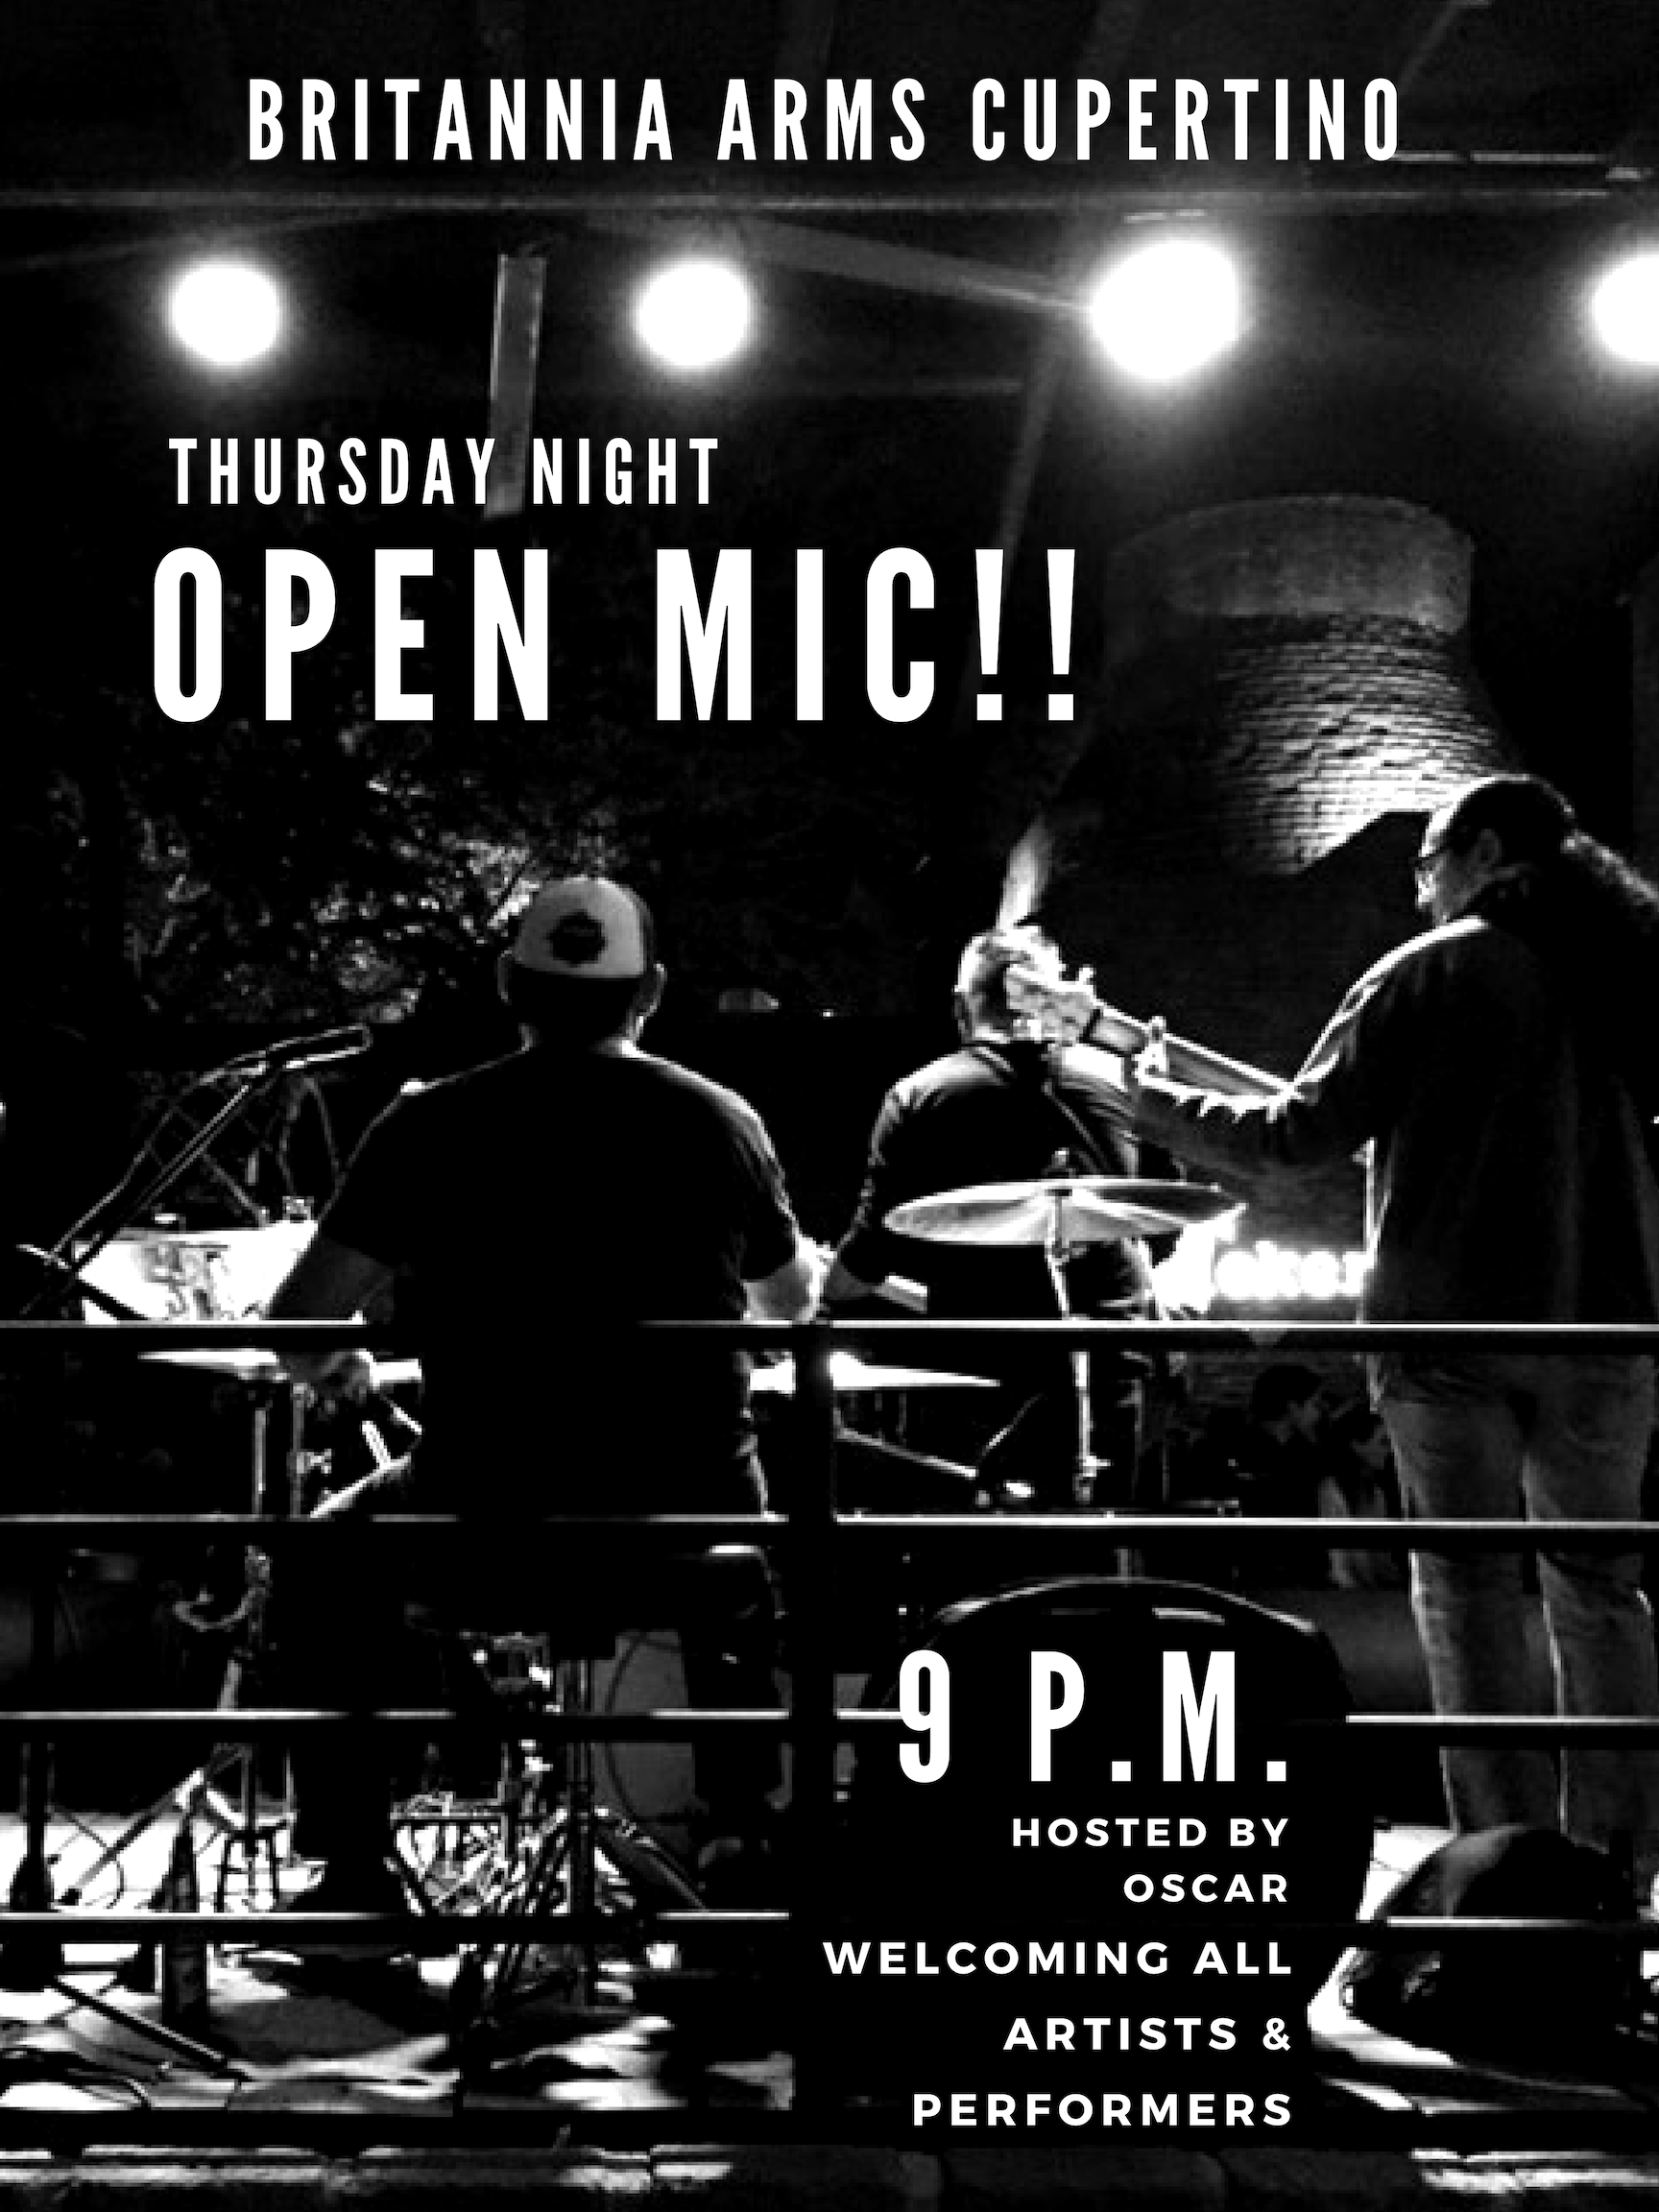 Join us  Every Thursday  for  Open Mic Night  at  9PM , hosted by the amazing Oscar! The Britannia Arms Cupertino offers its stage to singers, musicians, comics and performers of all ages!